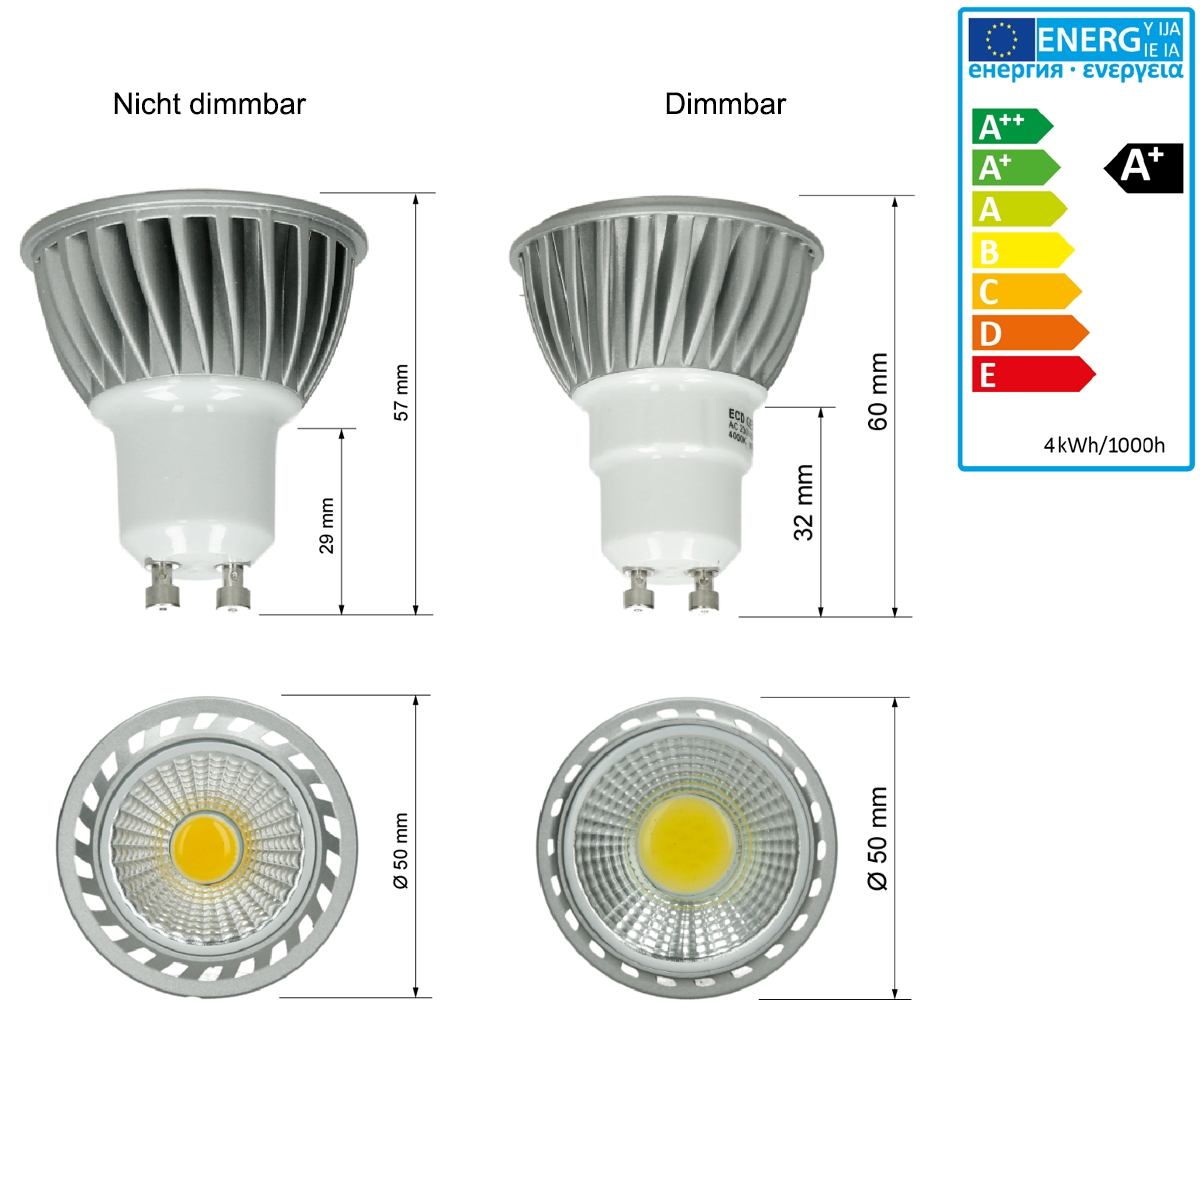 Led Birnen Gu10 Led Birnen Gu10. Gu10 Led Bulb 6w Smd Cob Spotlight 50w